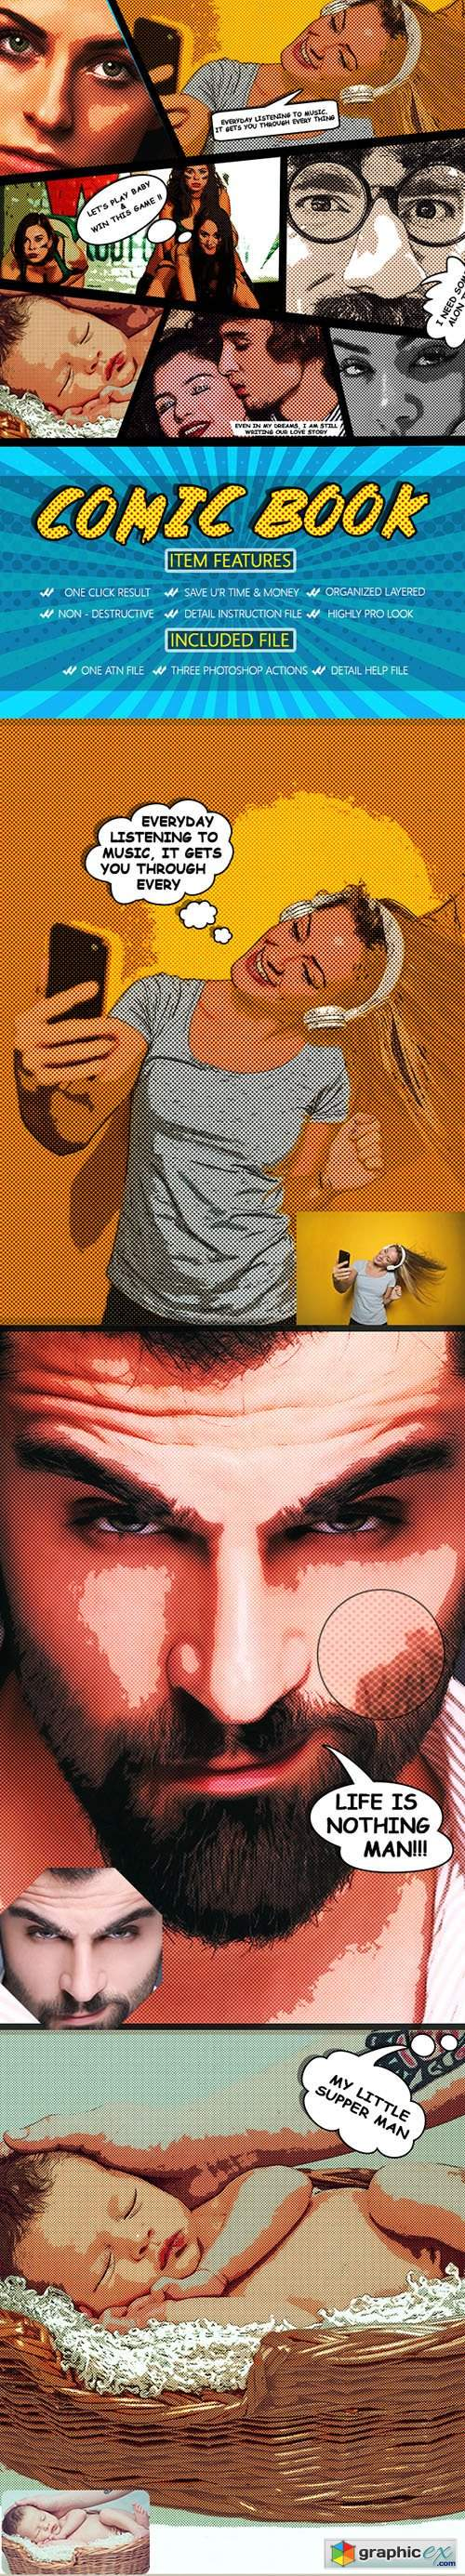 Comic Book Photoshop Action 22908999